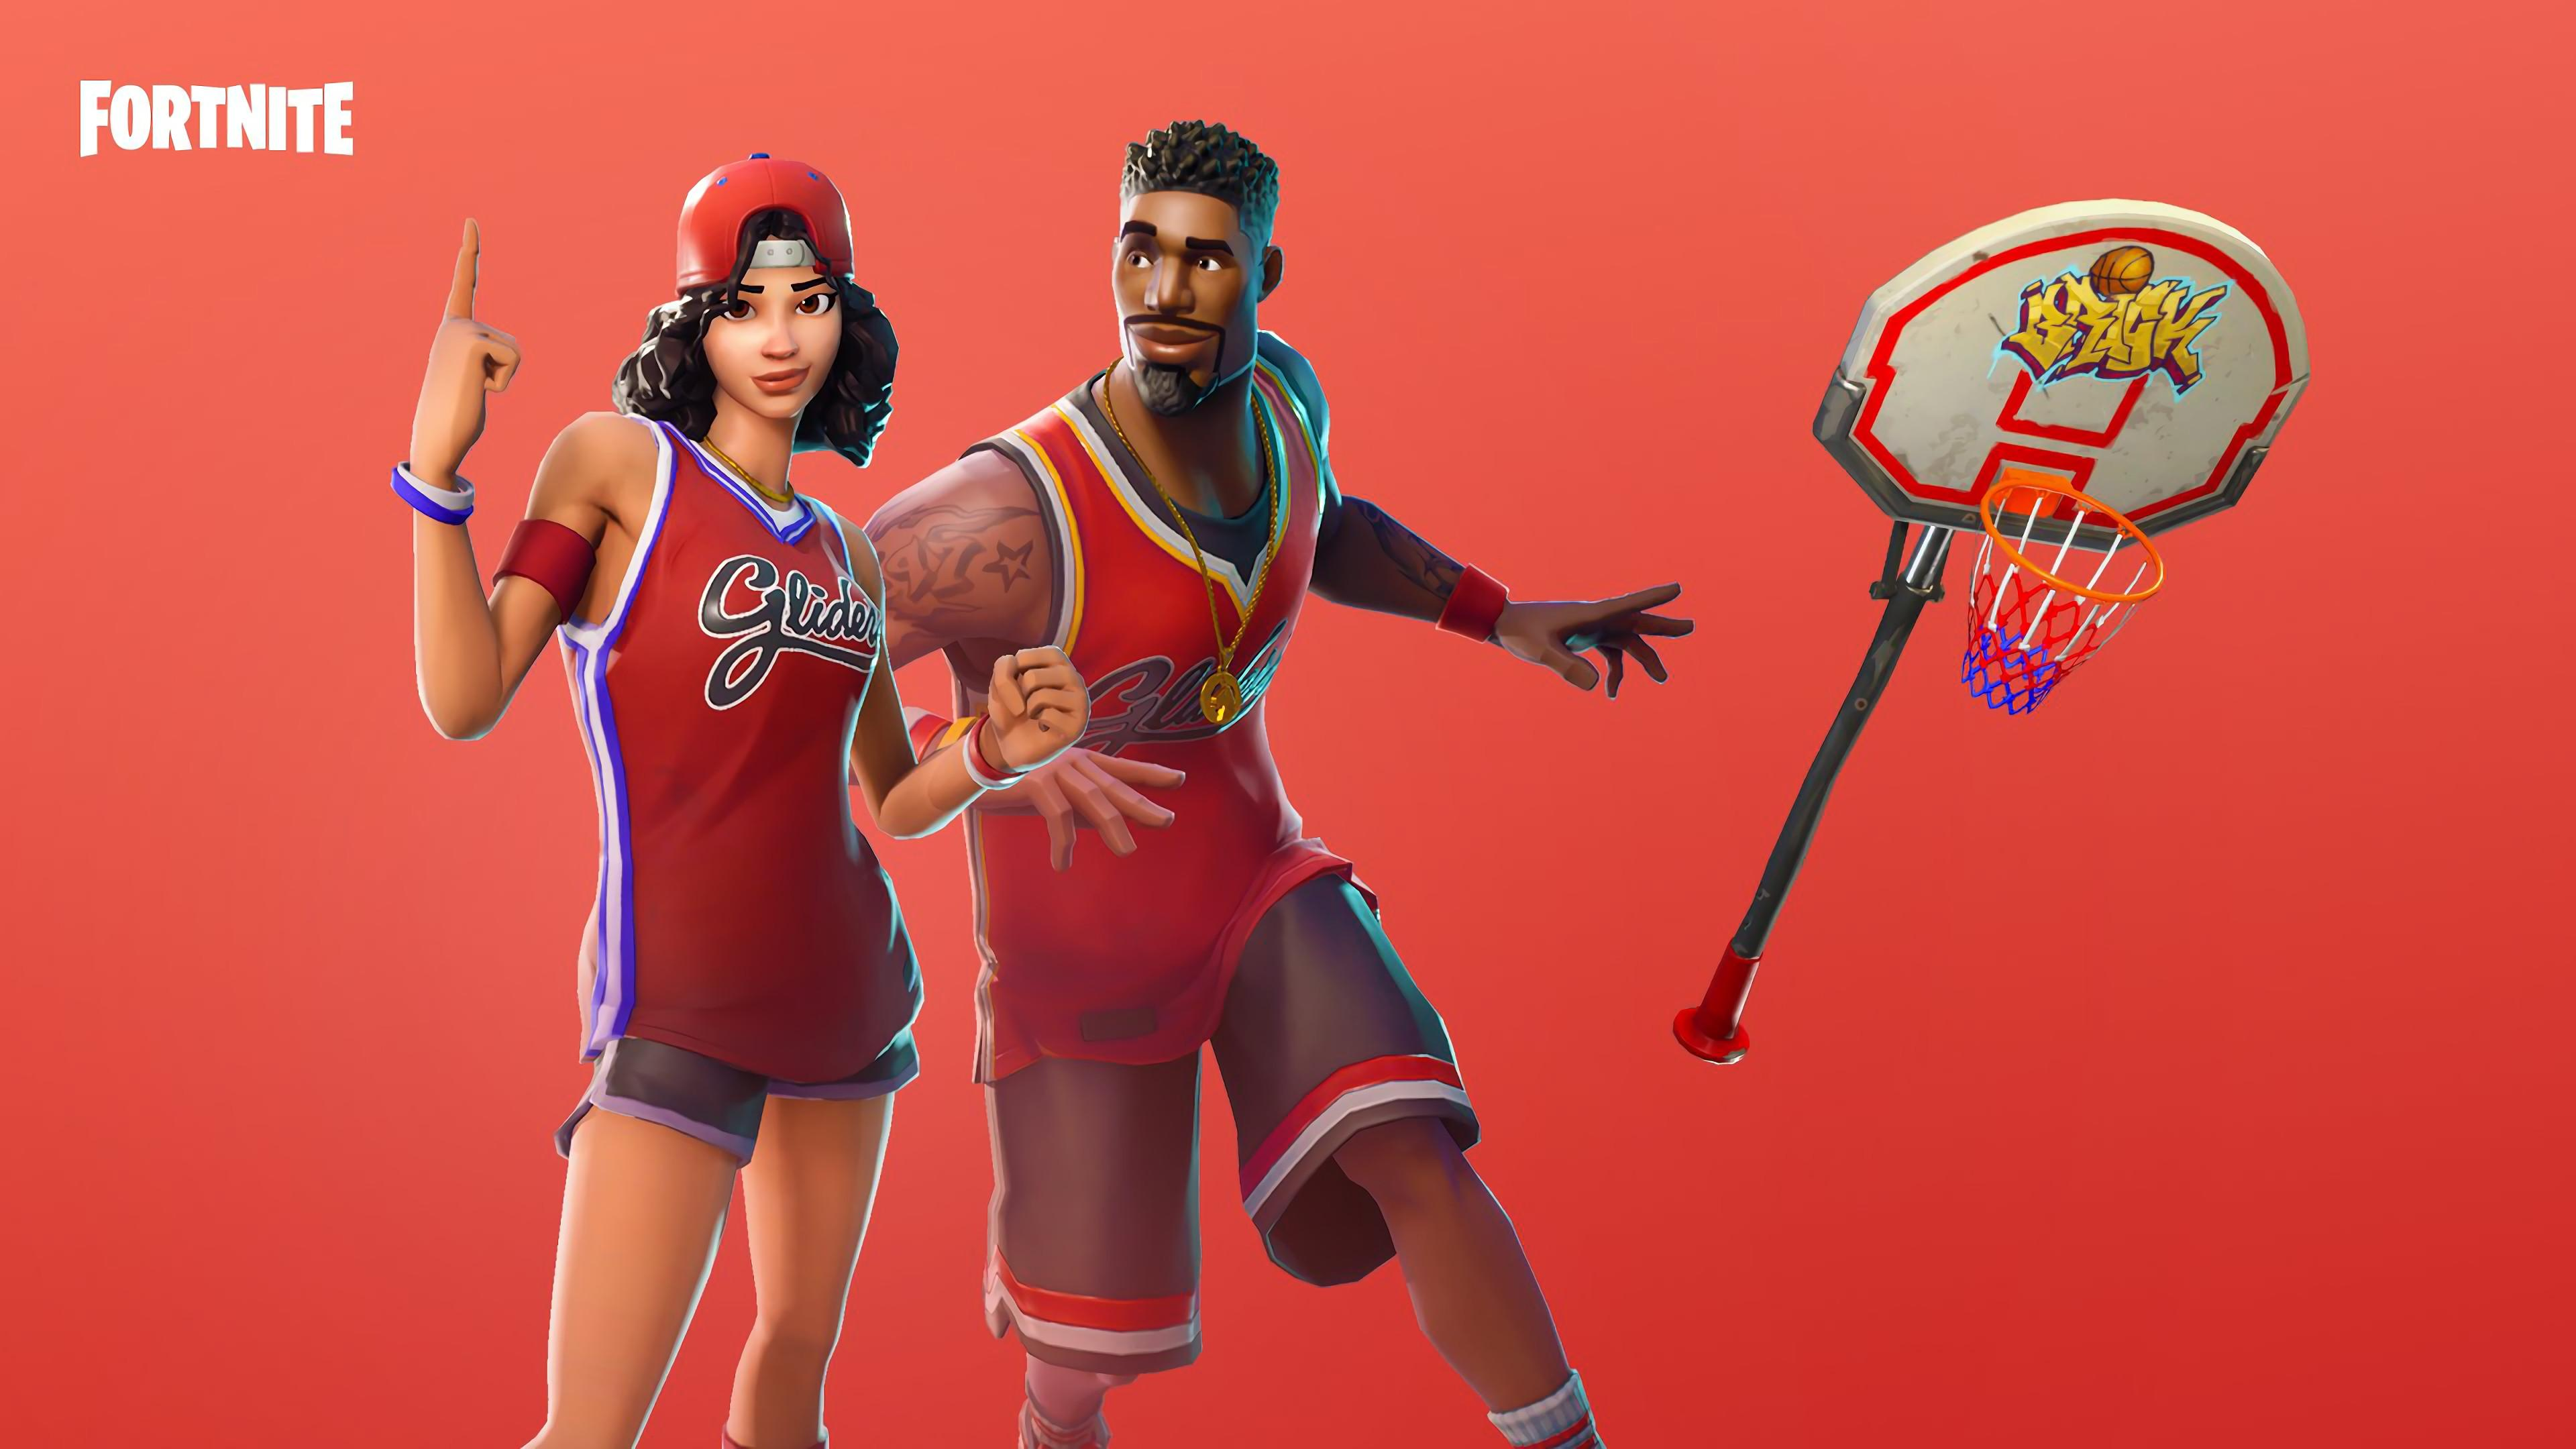 Jumpshot 4K 8K HD Fortnite Battle Royale Wallpapers